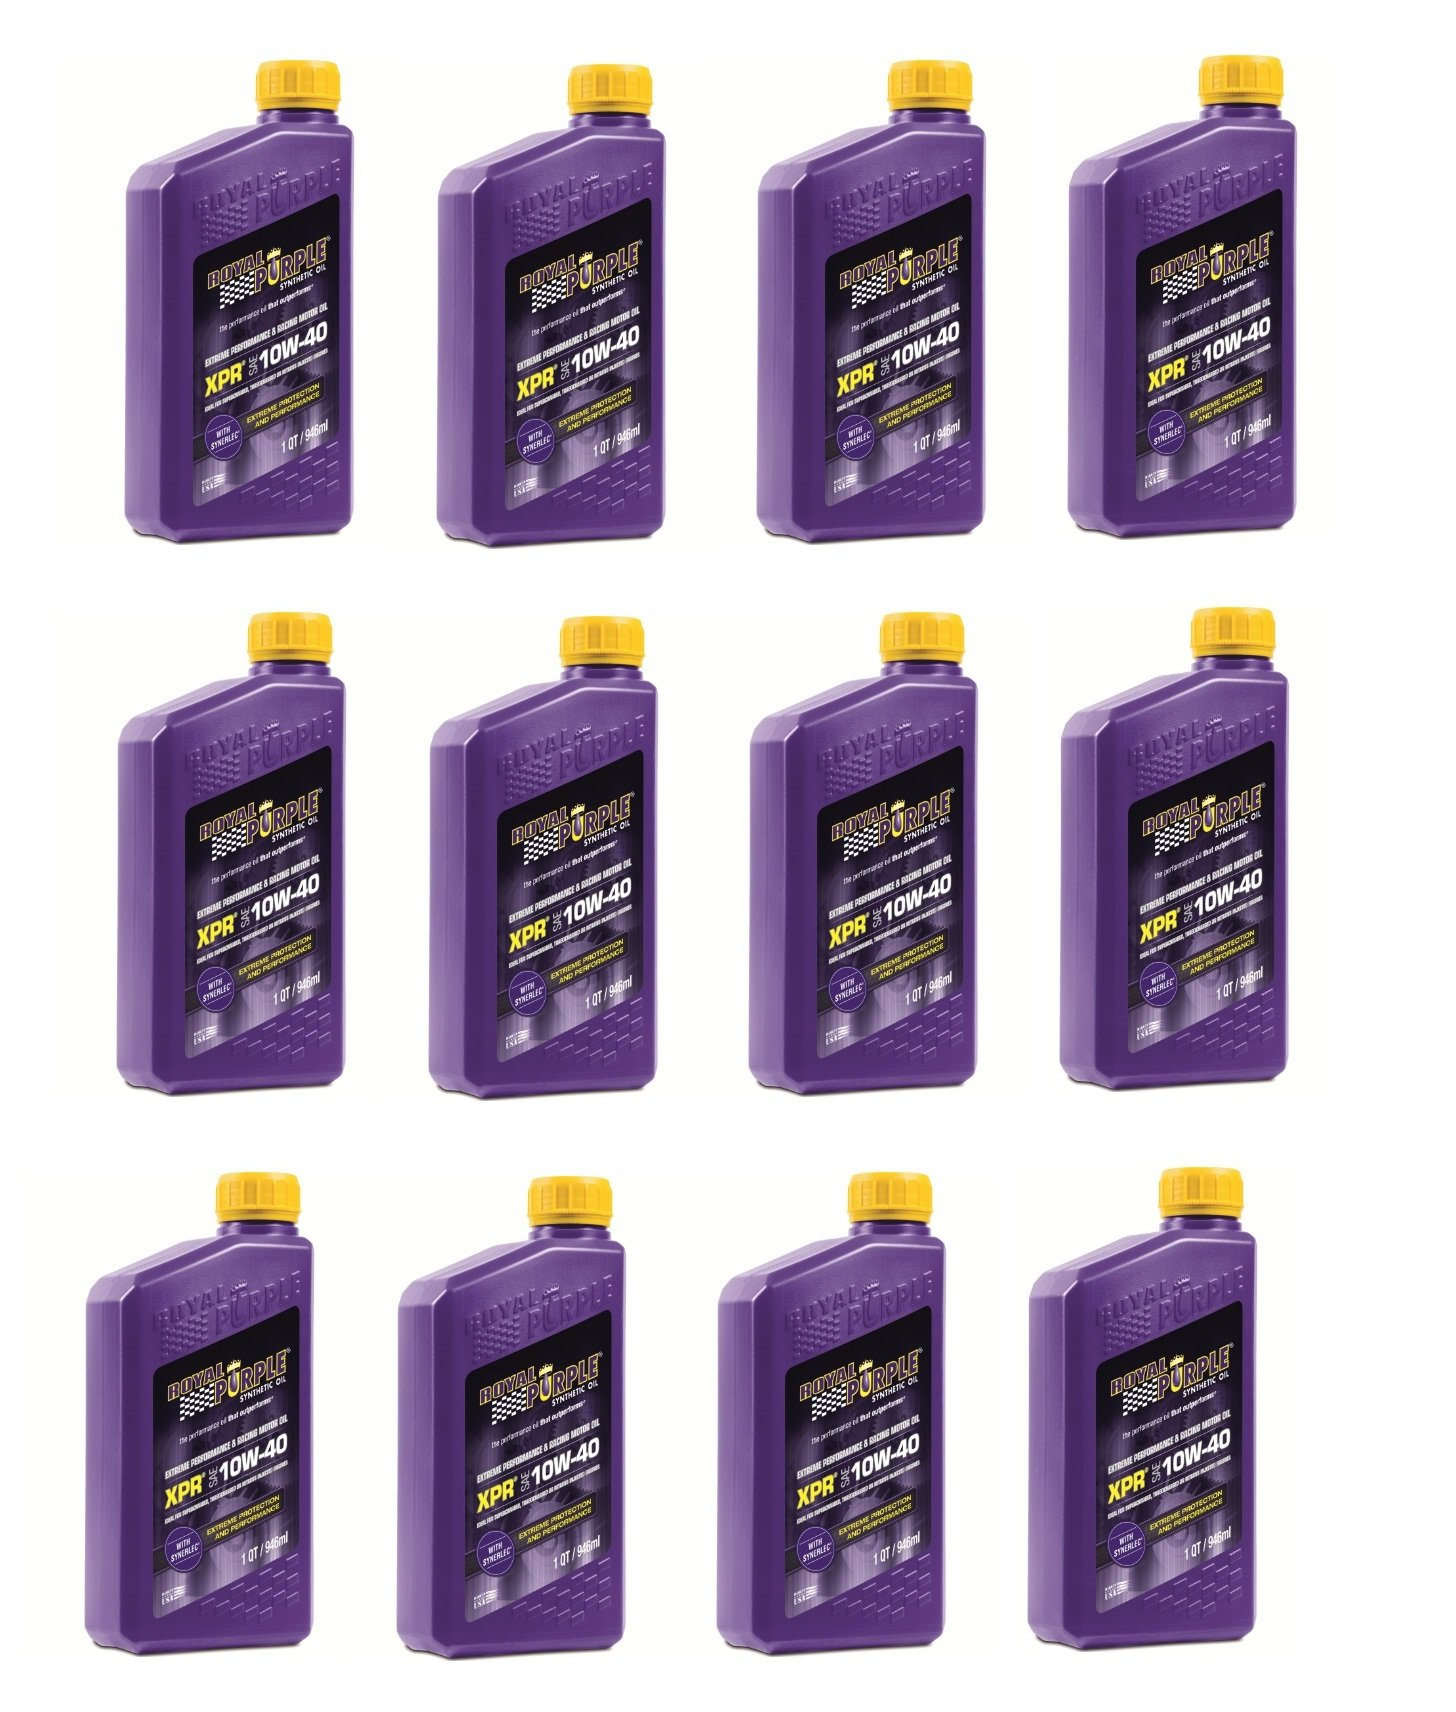 Royal Purple 12041 XPR 10W-40 Extreme Performance Synthetic Racing Motor Oil - 1 qt. (Case of 12) by Royal Purple